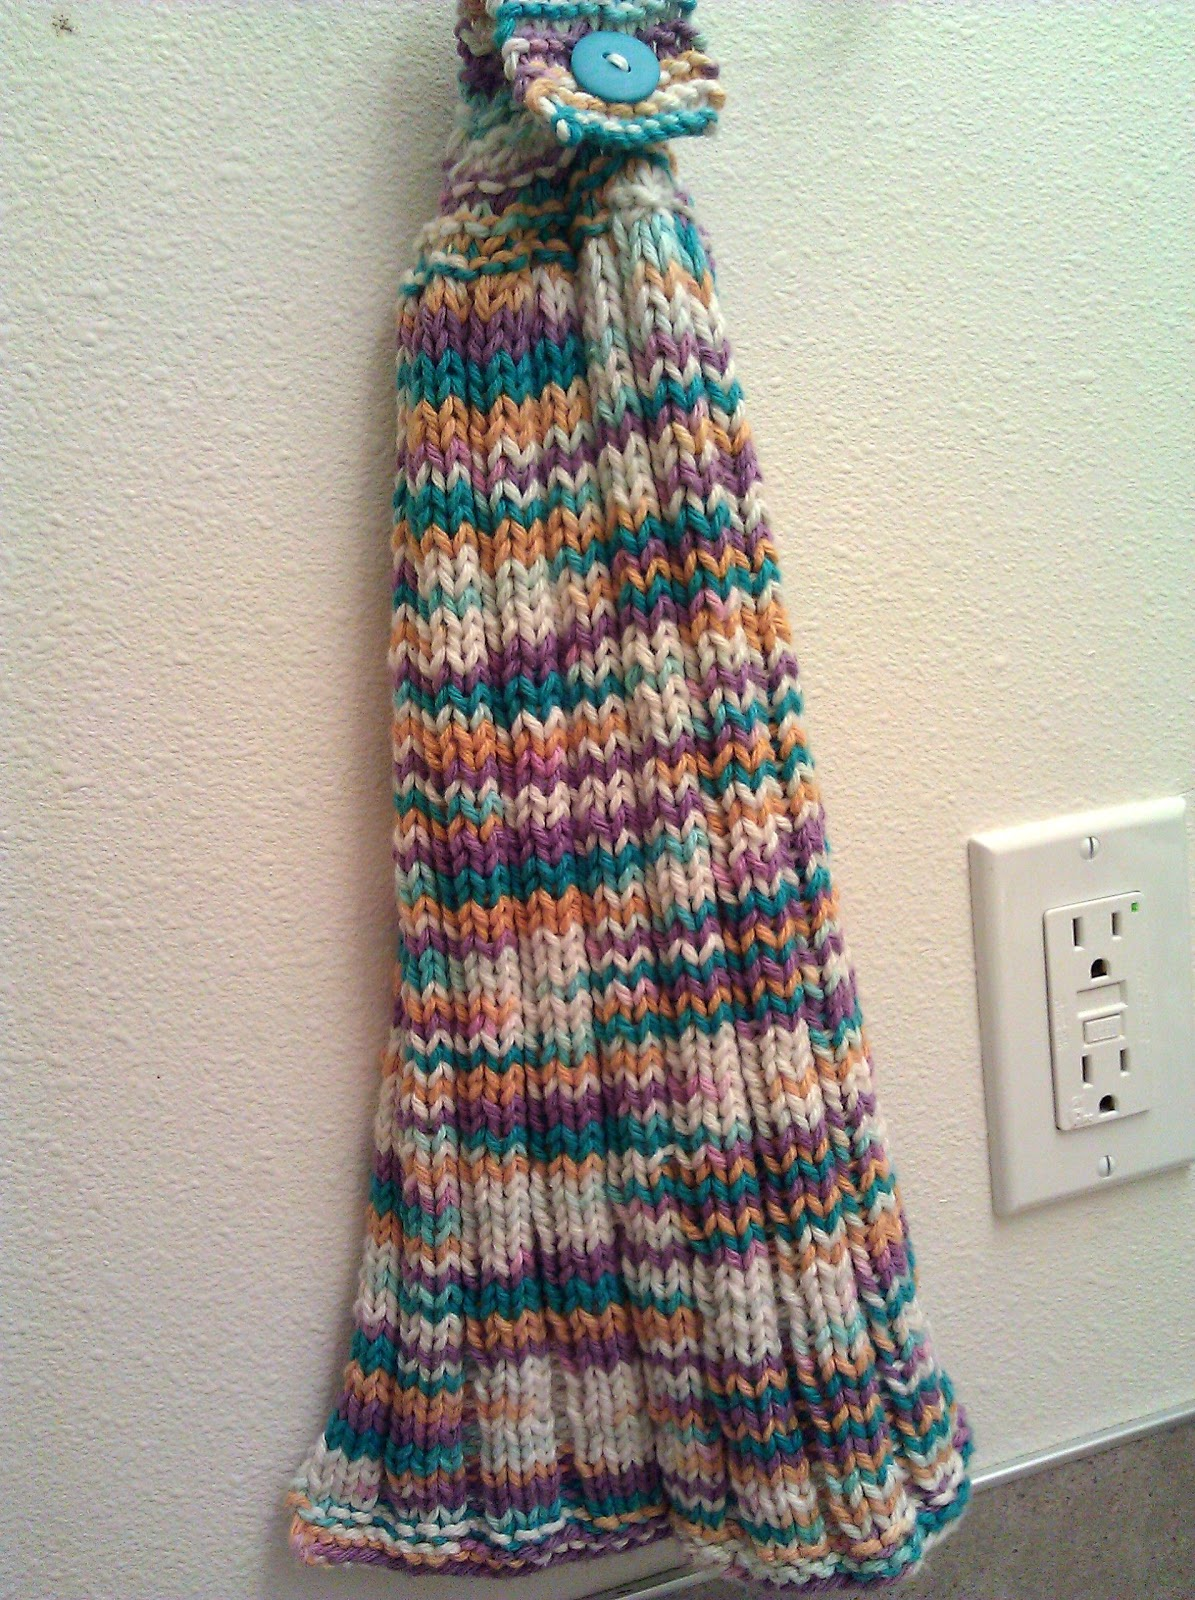 Knitted Chevron Baby Blanket Pattern : Dancing in the Rain: My First Published Knitting Pattern!